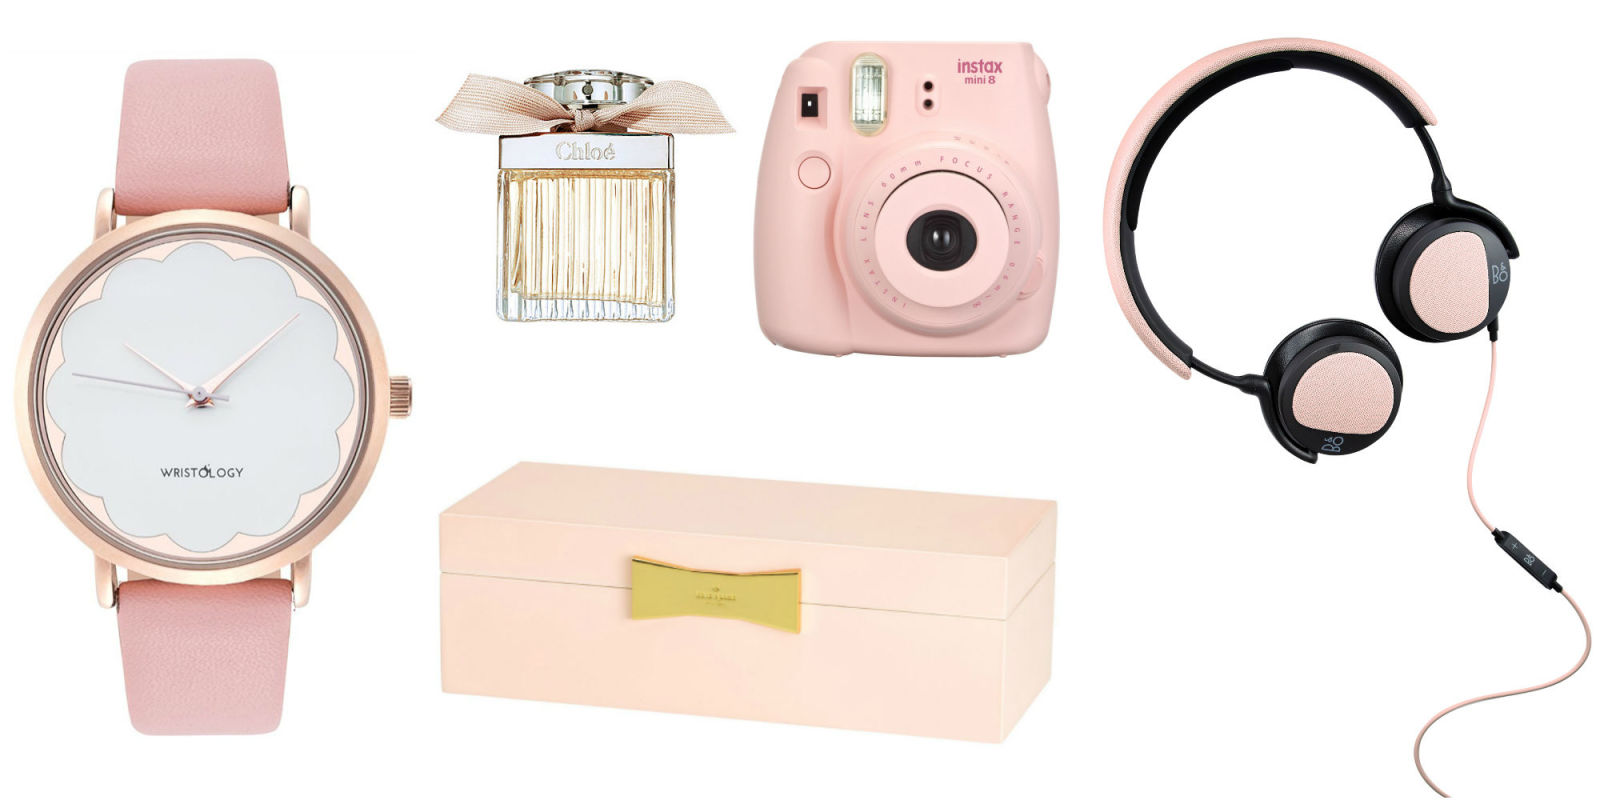 20 Best Valentine's Day Gifts for Her - Romantic Gifts for Wife or ...